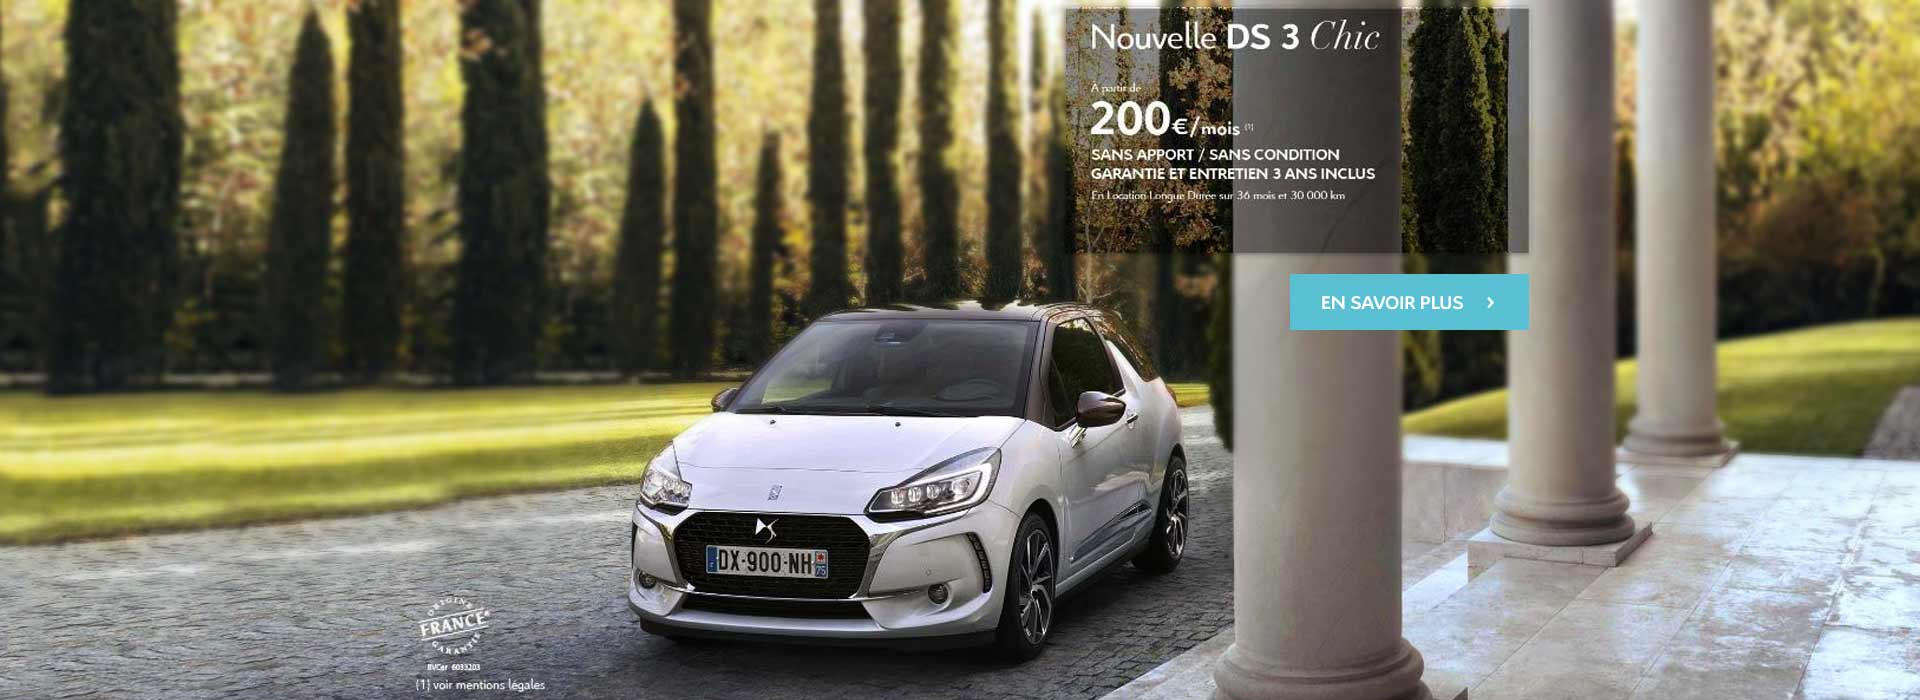 DS 3 chic